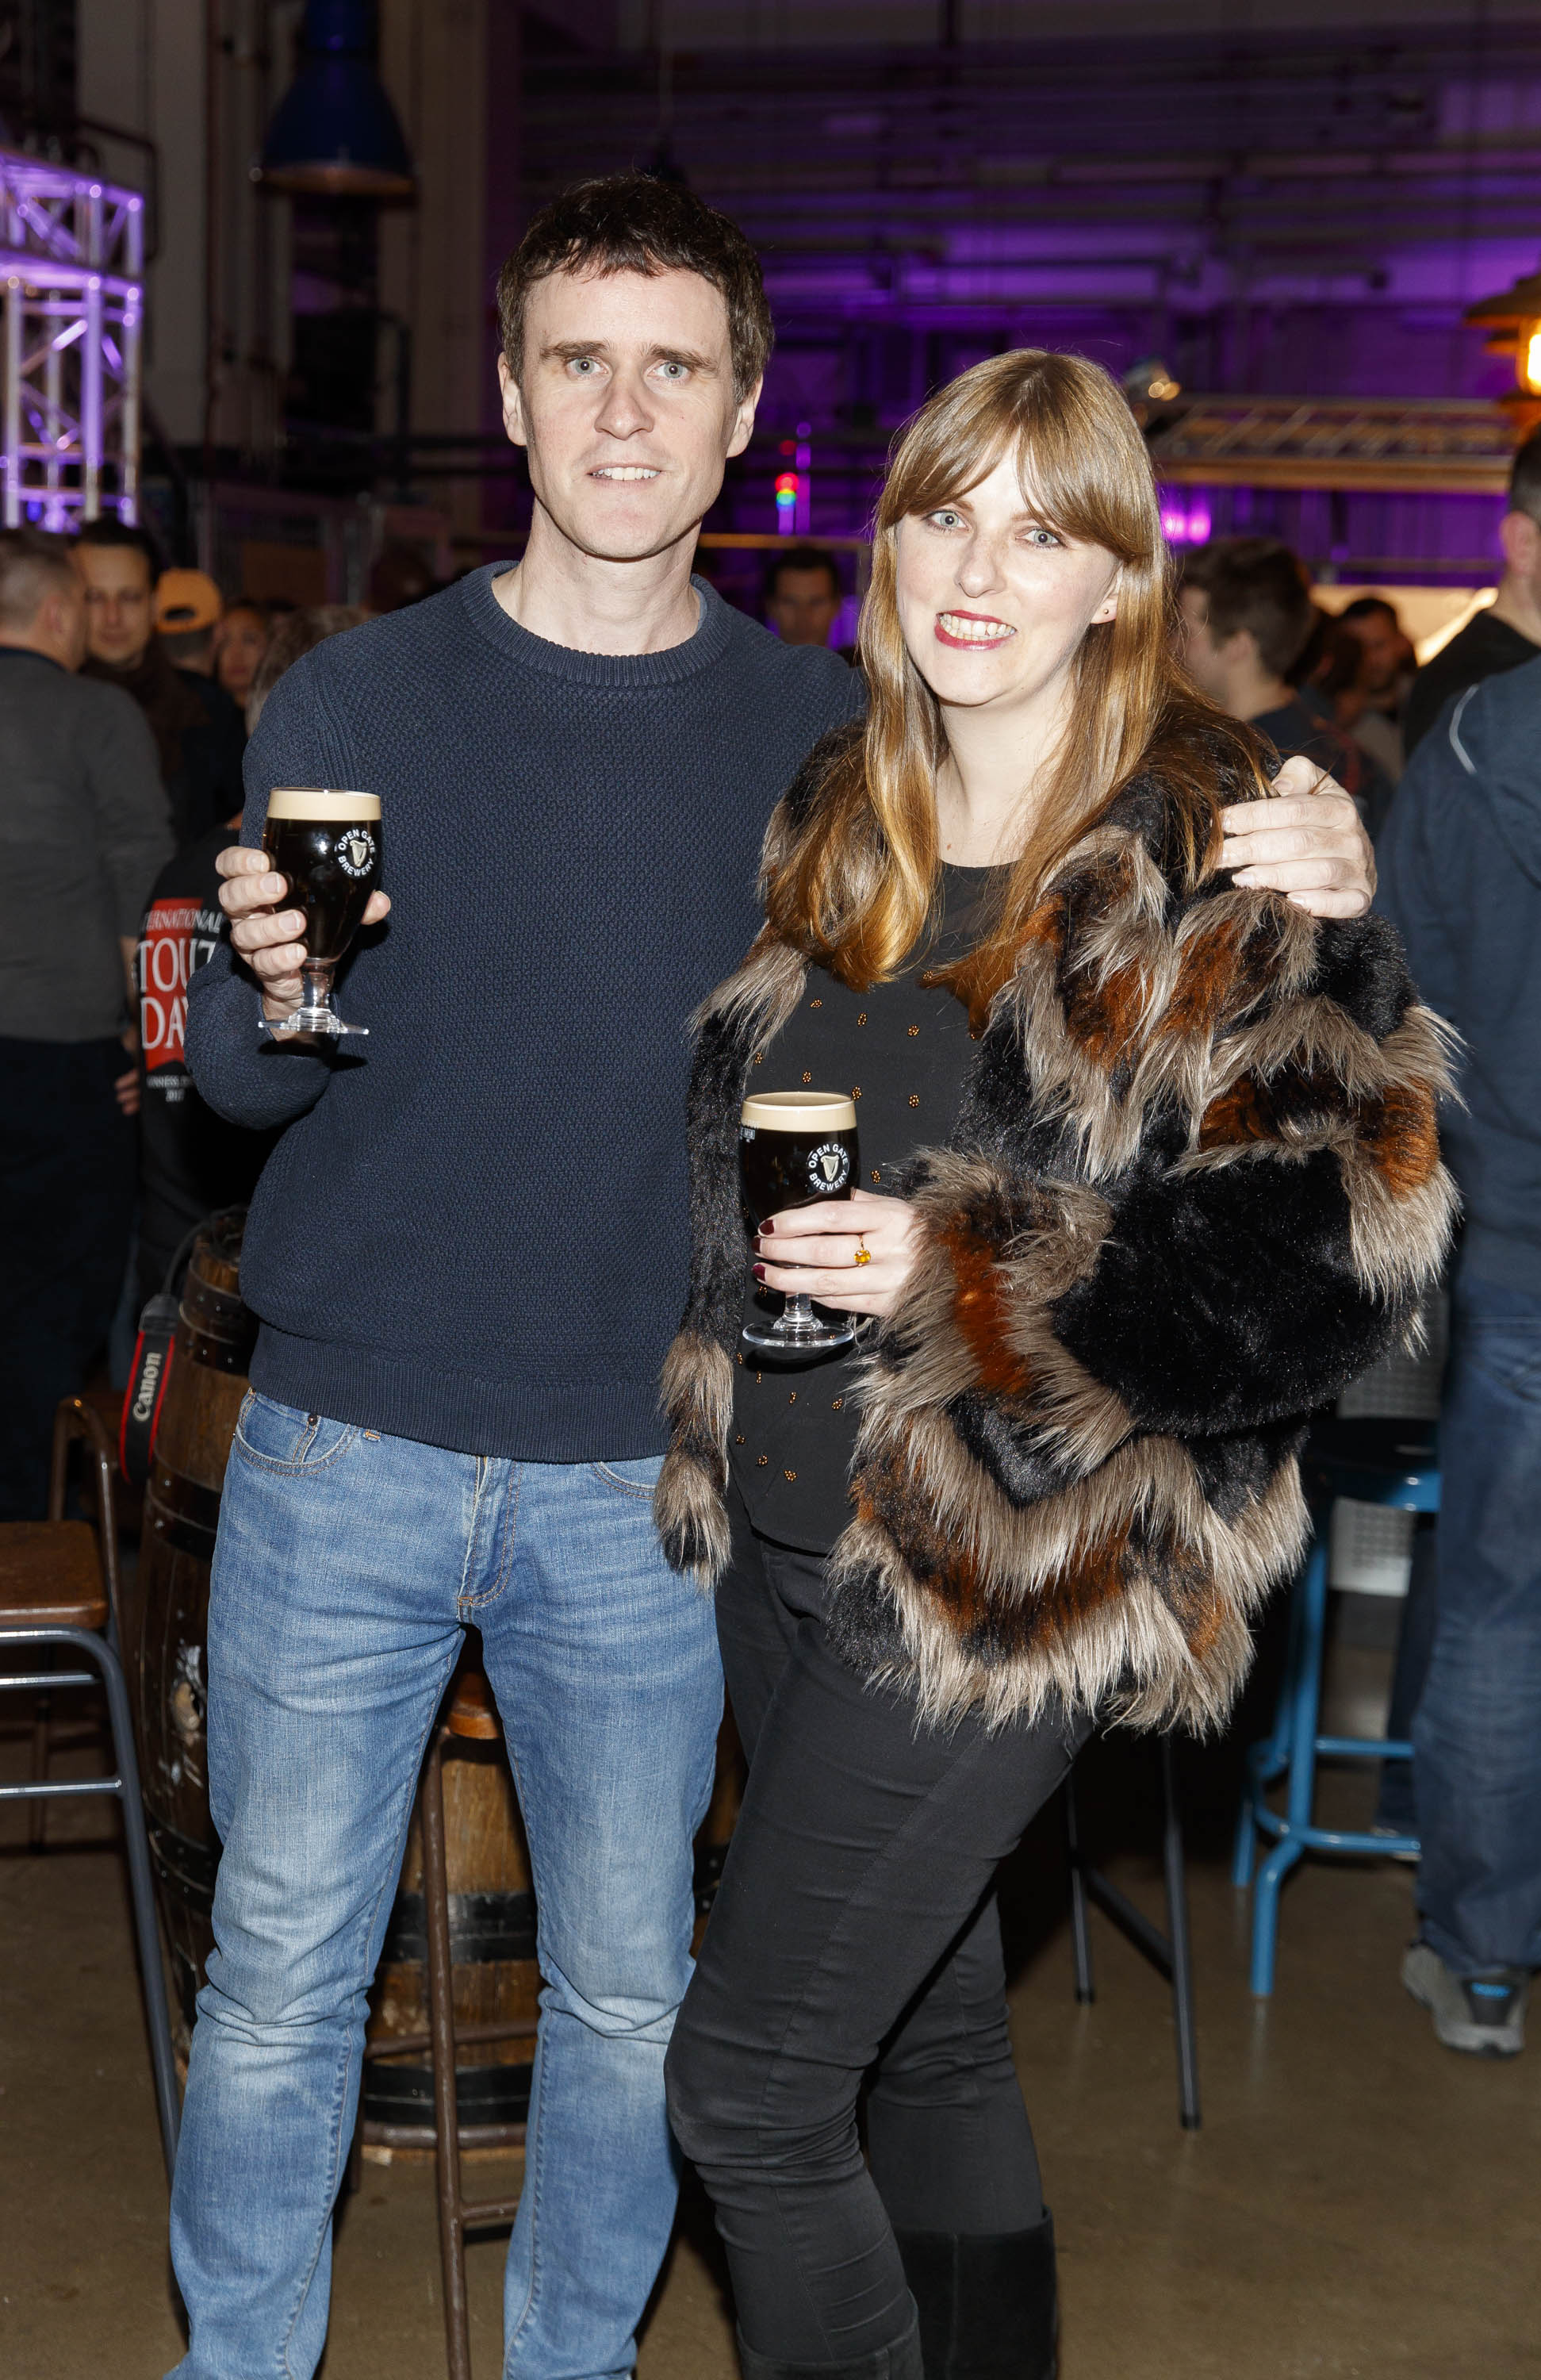 STOUT OF THIS WORLD Kevin Burke and Leslie Ann Horgan pictured on International Stout Day as Guinness celebrated innovation in brewing with a future of stout summit.    Guinness together with guest brewers and a host of experts from around the world, celebrated bravery in brewing by hosting a Future of Stout Summit, focused on stout innovation and the opportunities in brewing this unique style of beer.   At the summit, Guinness announced that its brewers are set to work on a feasibility study, which will investigate the viability of brewing a Guinness fit to be enjoyed in space. Through further research, innovation and experimentation, Guinness will draw on over 259 years of experience in the hope of making a breakthrough.     Hosted in the Open Gate Brewery, the home of beer innovation and experimentation at Guinness, the stout summit was attended by a team of brewers from the St. James's Gate Brewery in Dublin and other brewers from around the world including the UK, the Netherlands, Korea as well as brewers from all over Ireland. Inspiration at the summit was also delivered by Dr. Norah Patten, who is set to be the first Irish person to travel into space, Kitchen's Theory's Chef, Jozef Youssef and Oxford University Gastrophysics Professor, Charles Spence, who together are on a continuous odyssey to research and demystify the field of gastronomy, and Erin Peters, the beer writer behind International Stout Day. Picture Andres Poveda More information can be found at www.guinness.com   Enjoy Guinness Sensibly. Visit www.drinkaware.ie.